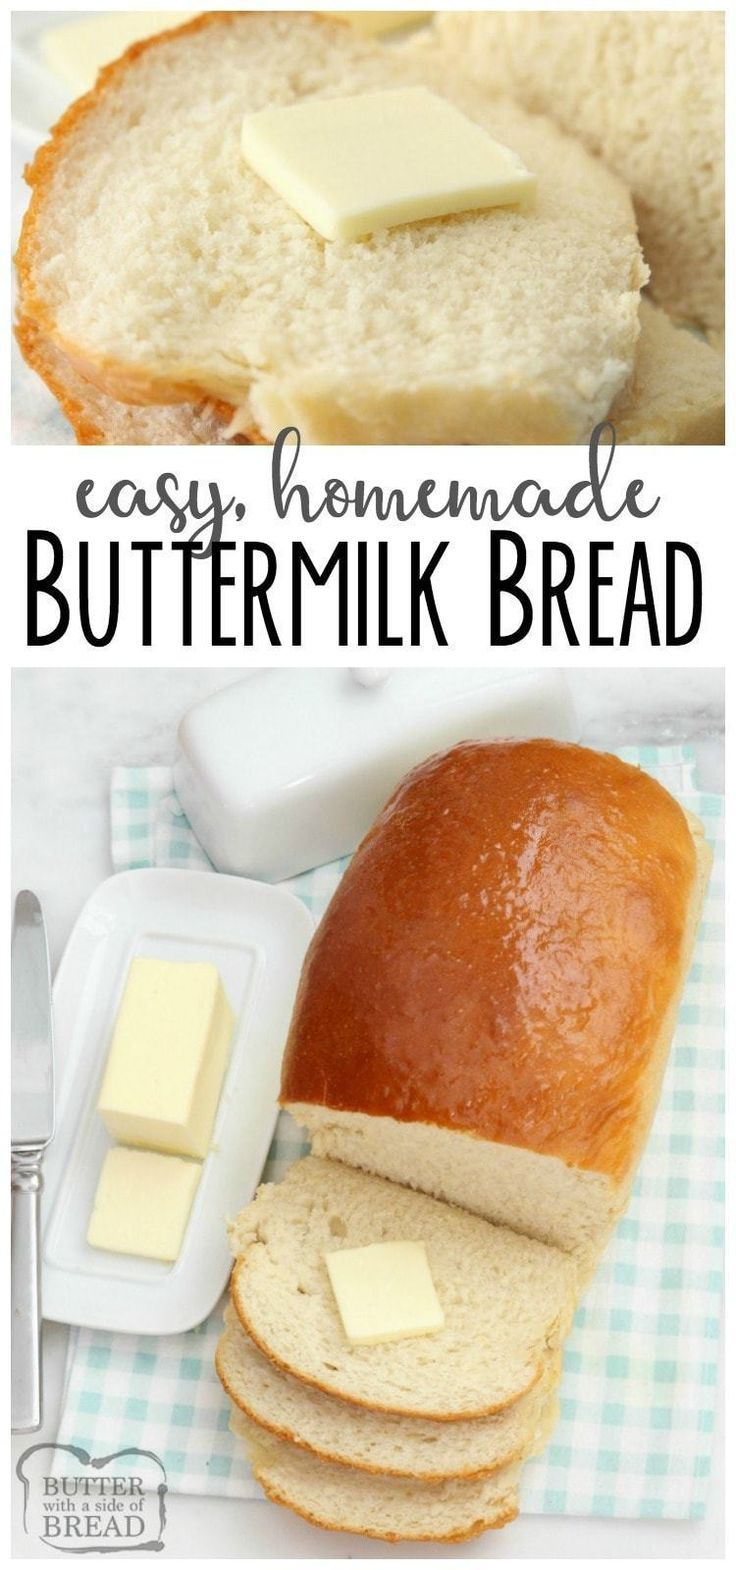 Homemade Buttermilk Bread In 2020 Buttermilk Recipes Bread Maker Recipes Homemade Buttermilk